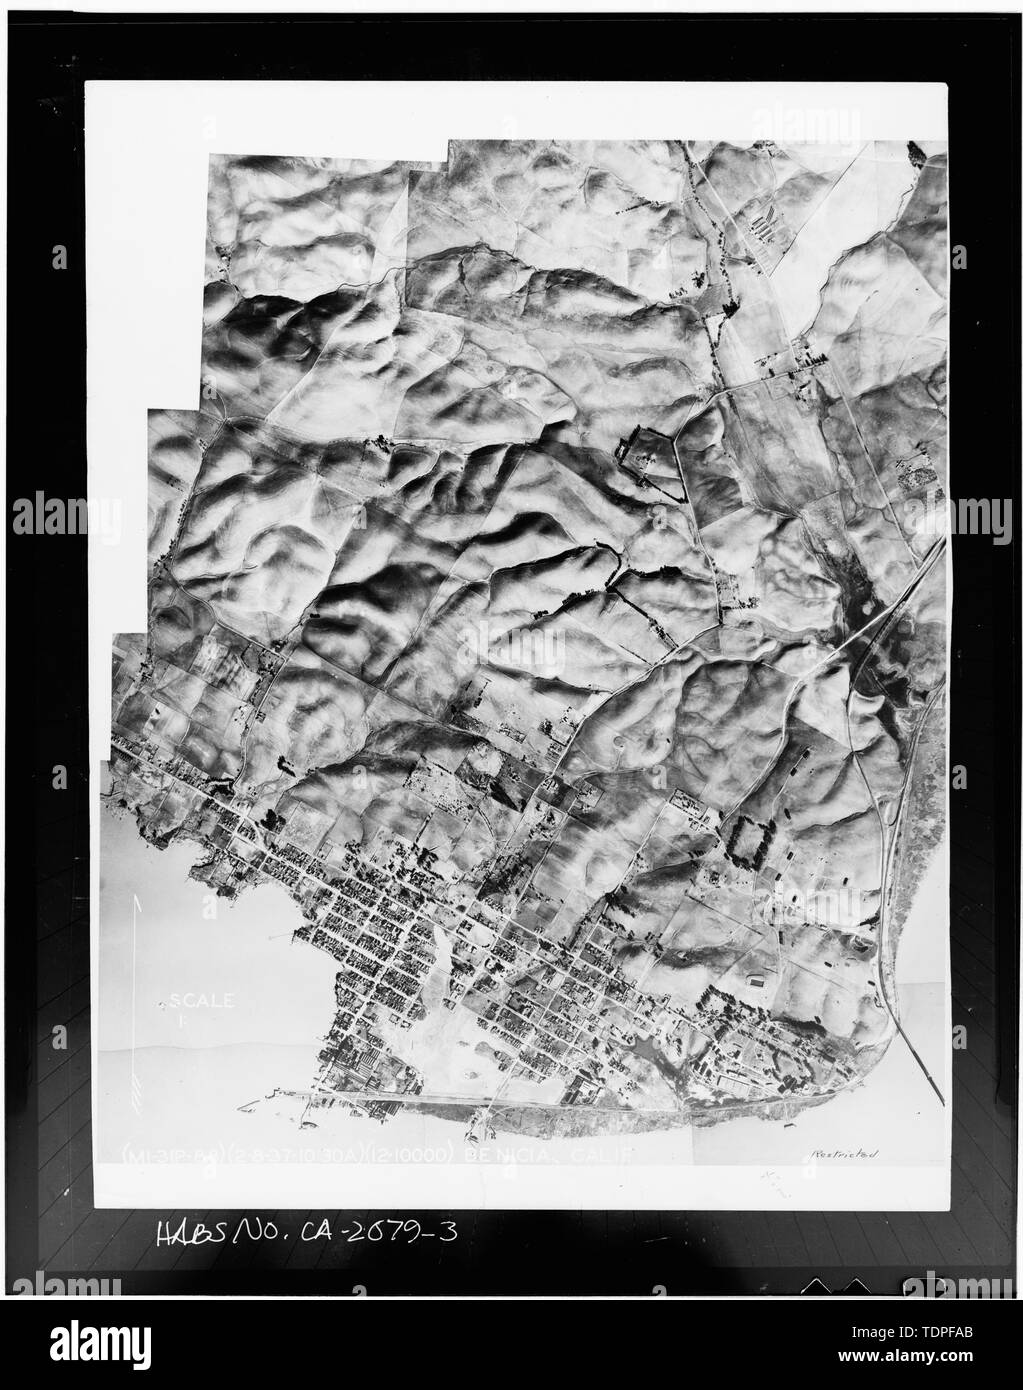 (from National Archives, Cartographic Division, Record Group 156, Folder 2) U.S. Army Photographer February, 1937 AERIAL VIEW OF BENICIA - City of Benicia, General Views, Benicia, Solano County, CA - Stock Image